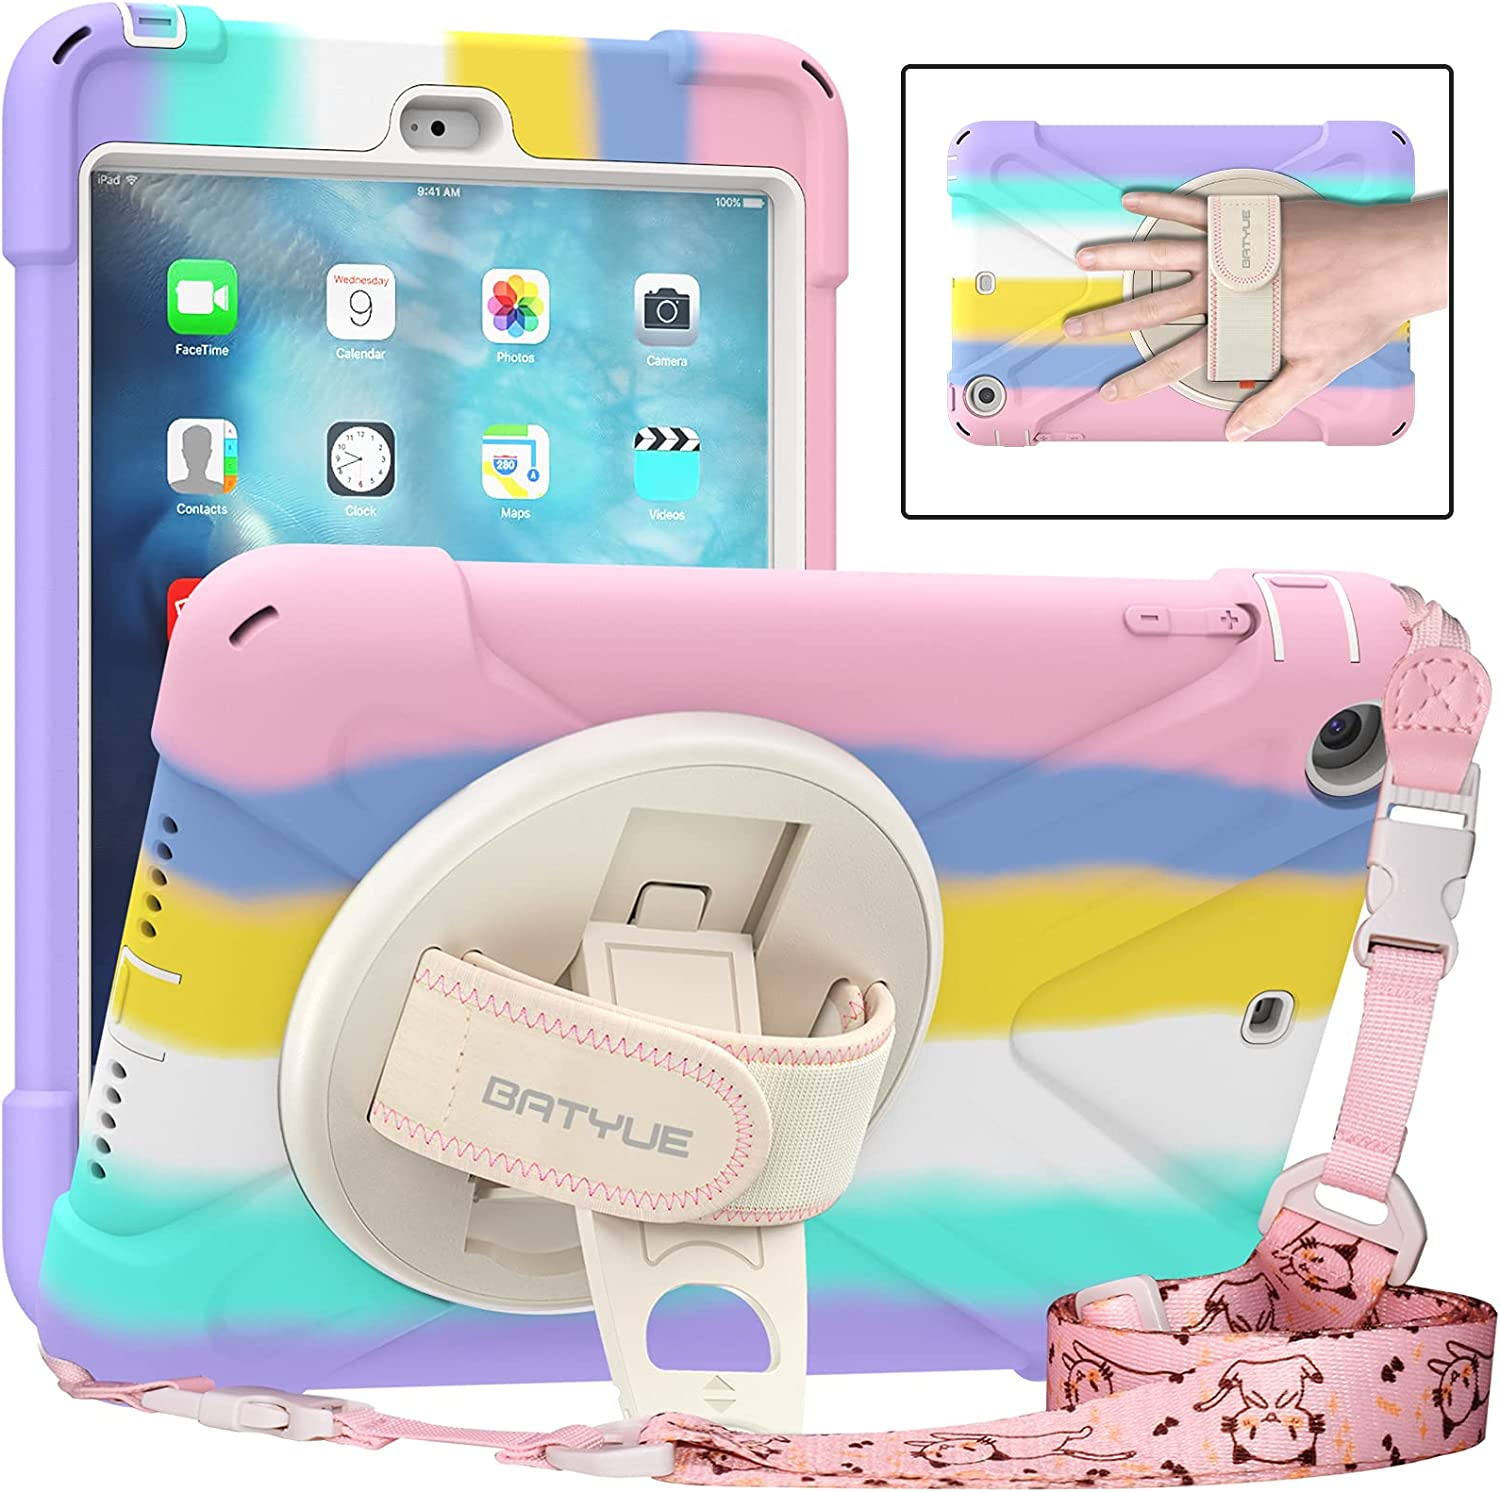 BATYUE iPad Mini 3/2/1 Case, Shockproof Protective Rugged Case with Pencil Holder & Hand Strap & Kickstand & Shoulder Strap for iPad Mini 3rd/2nd/1st Generation,7.9 Inch cover for Kids(Colourful Pink)